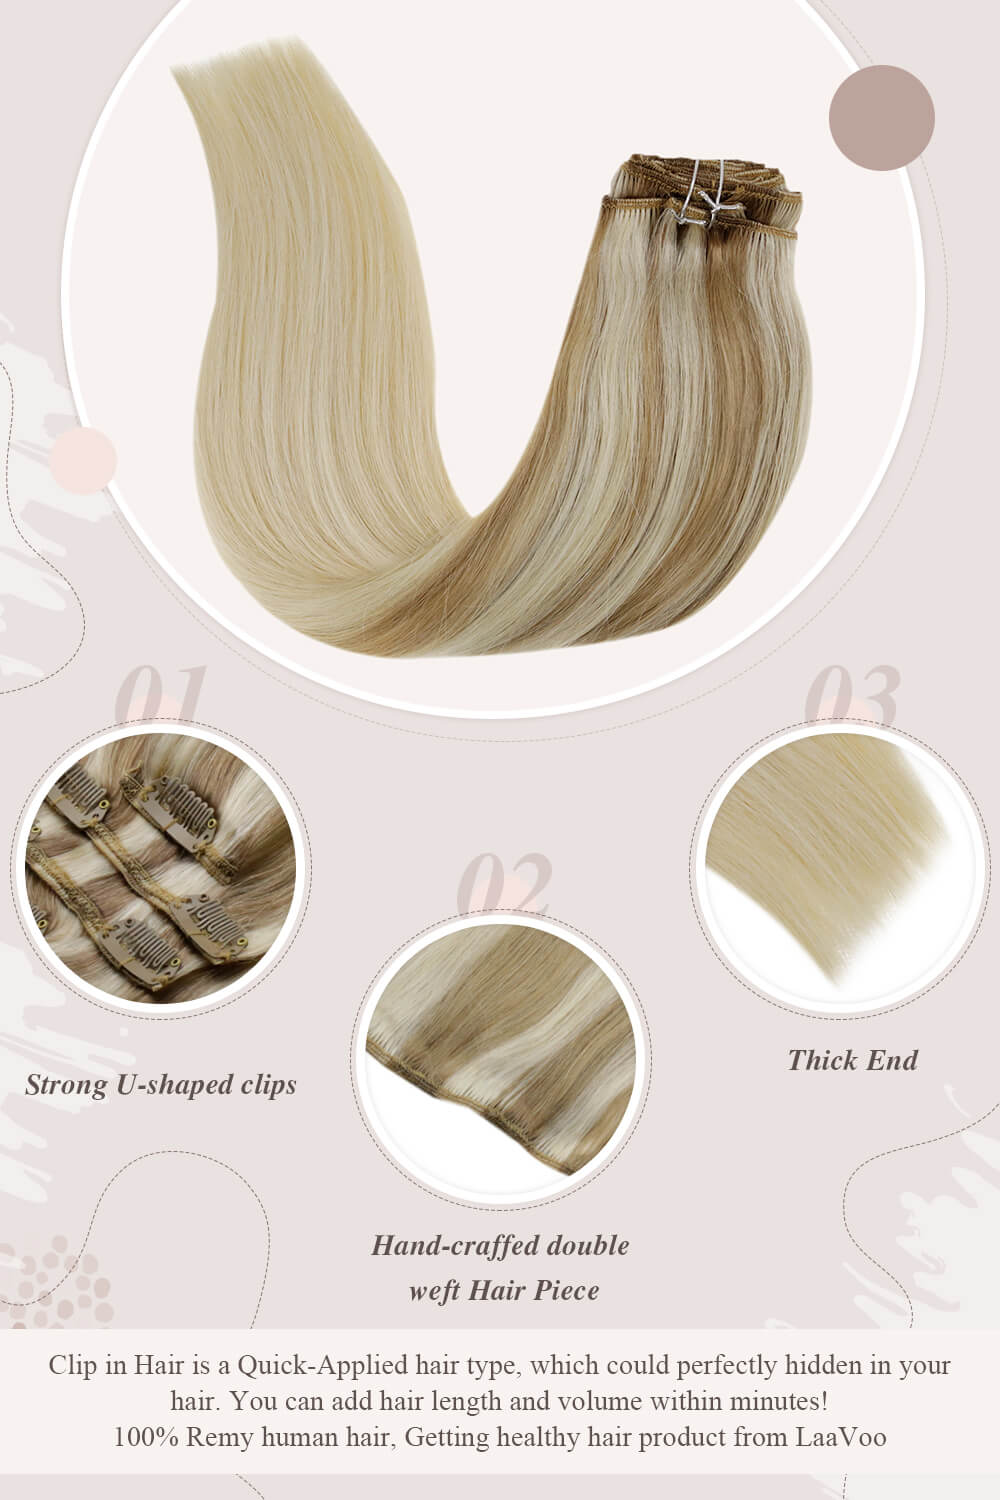 solid white blonde strong U shaped clips hand craffed double weft hair piece thick end clip in hair perfectly hidden in your hair you can add hair length and volume within minutes Remy human hair getting healthy hair